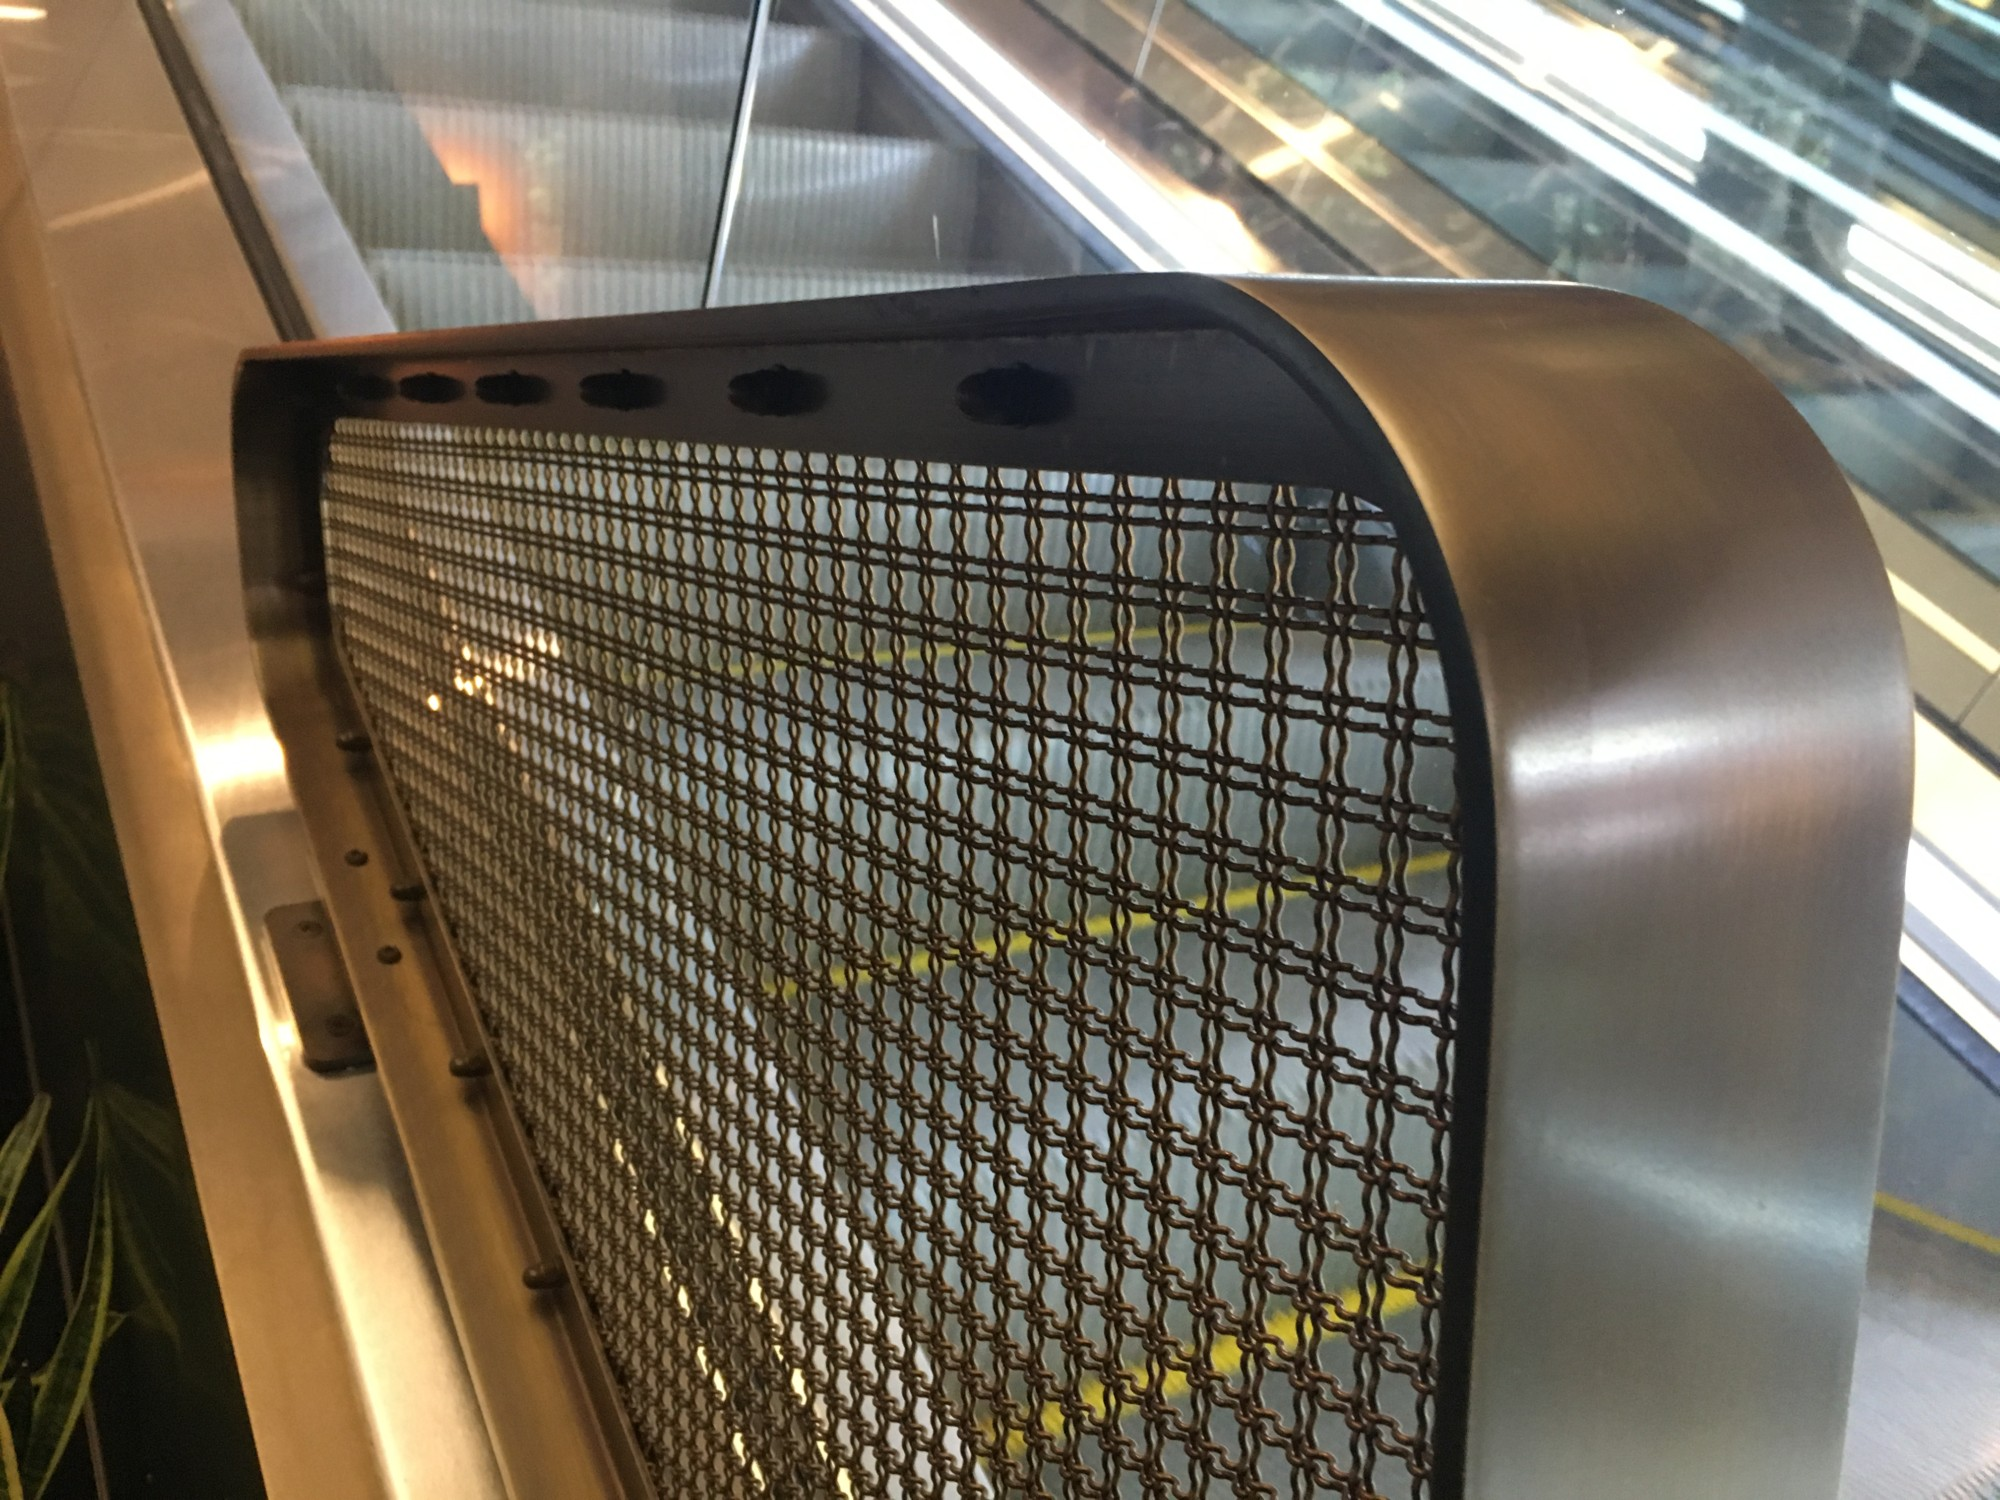 Aluminium mesh welded to aluminium flat bar frames for safety screens at Chifley Plaza